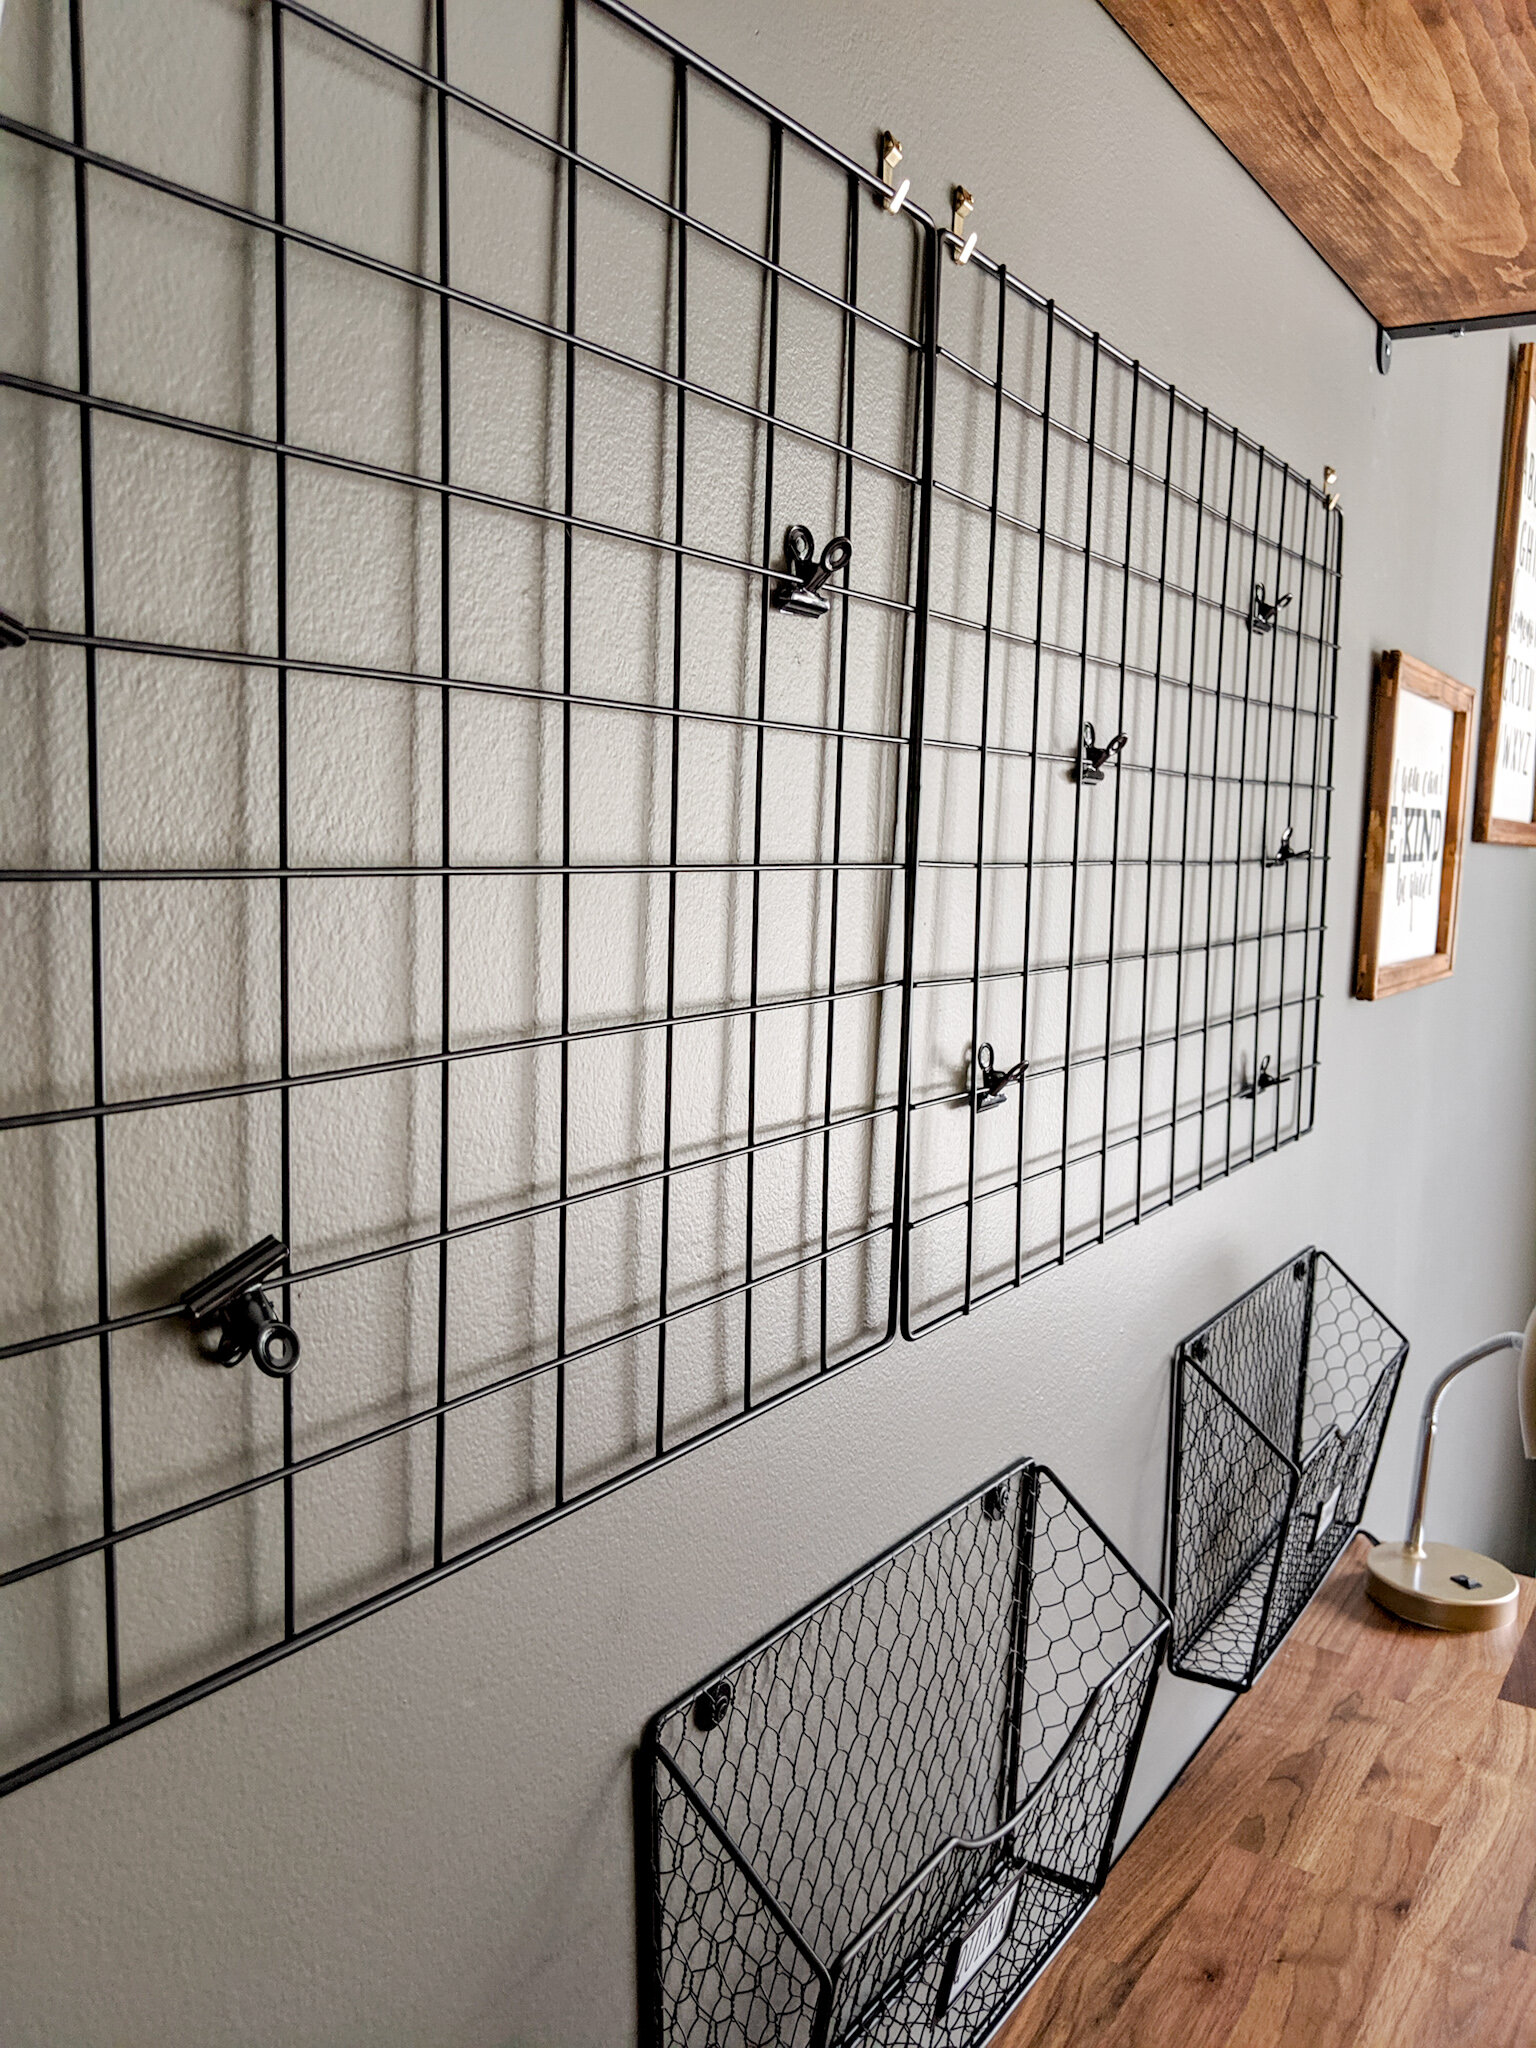 The wall grid and baskets at the homework station will display completed work.